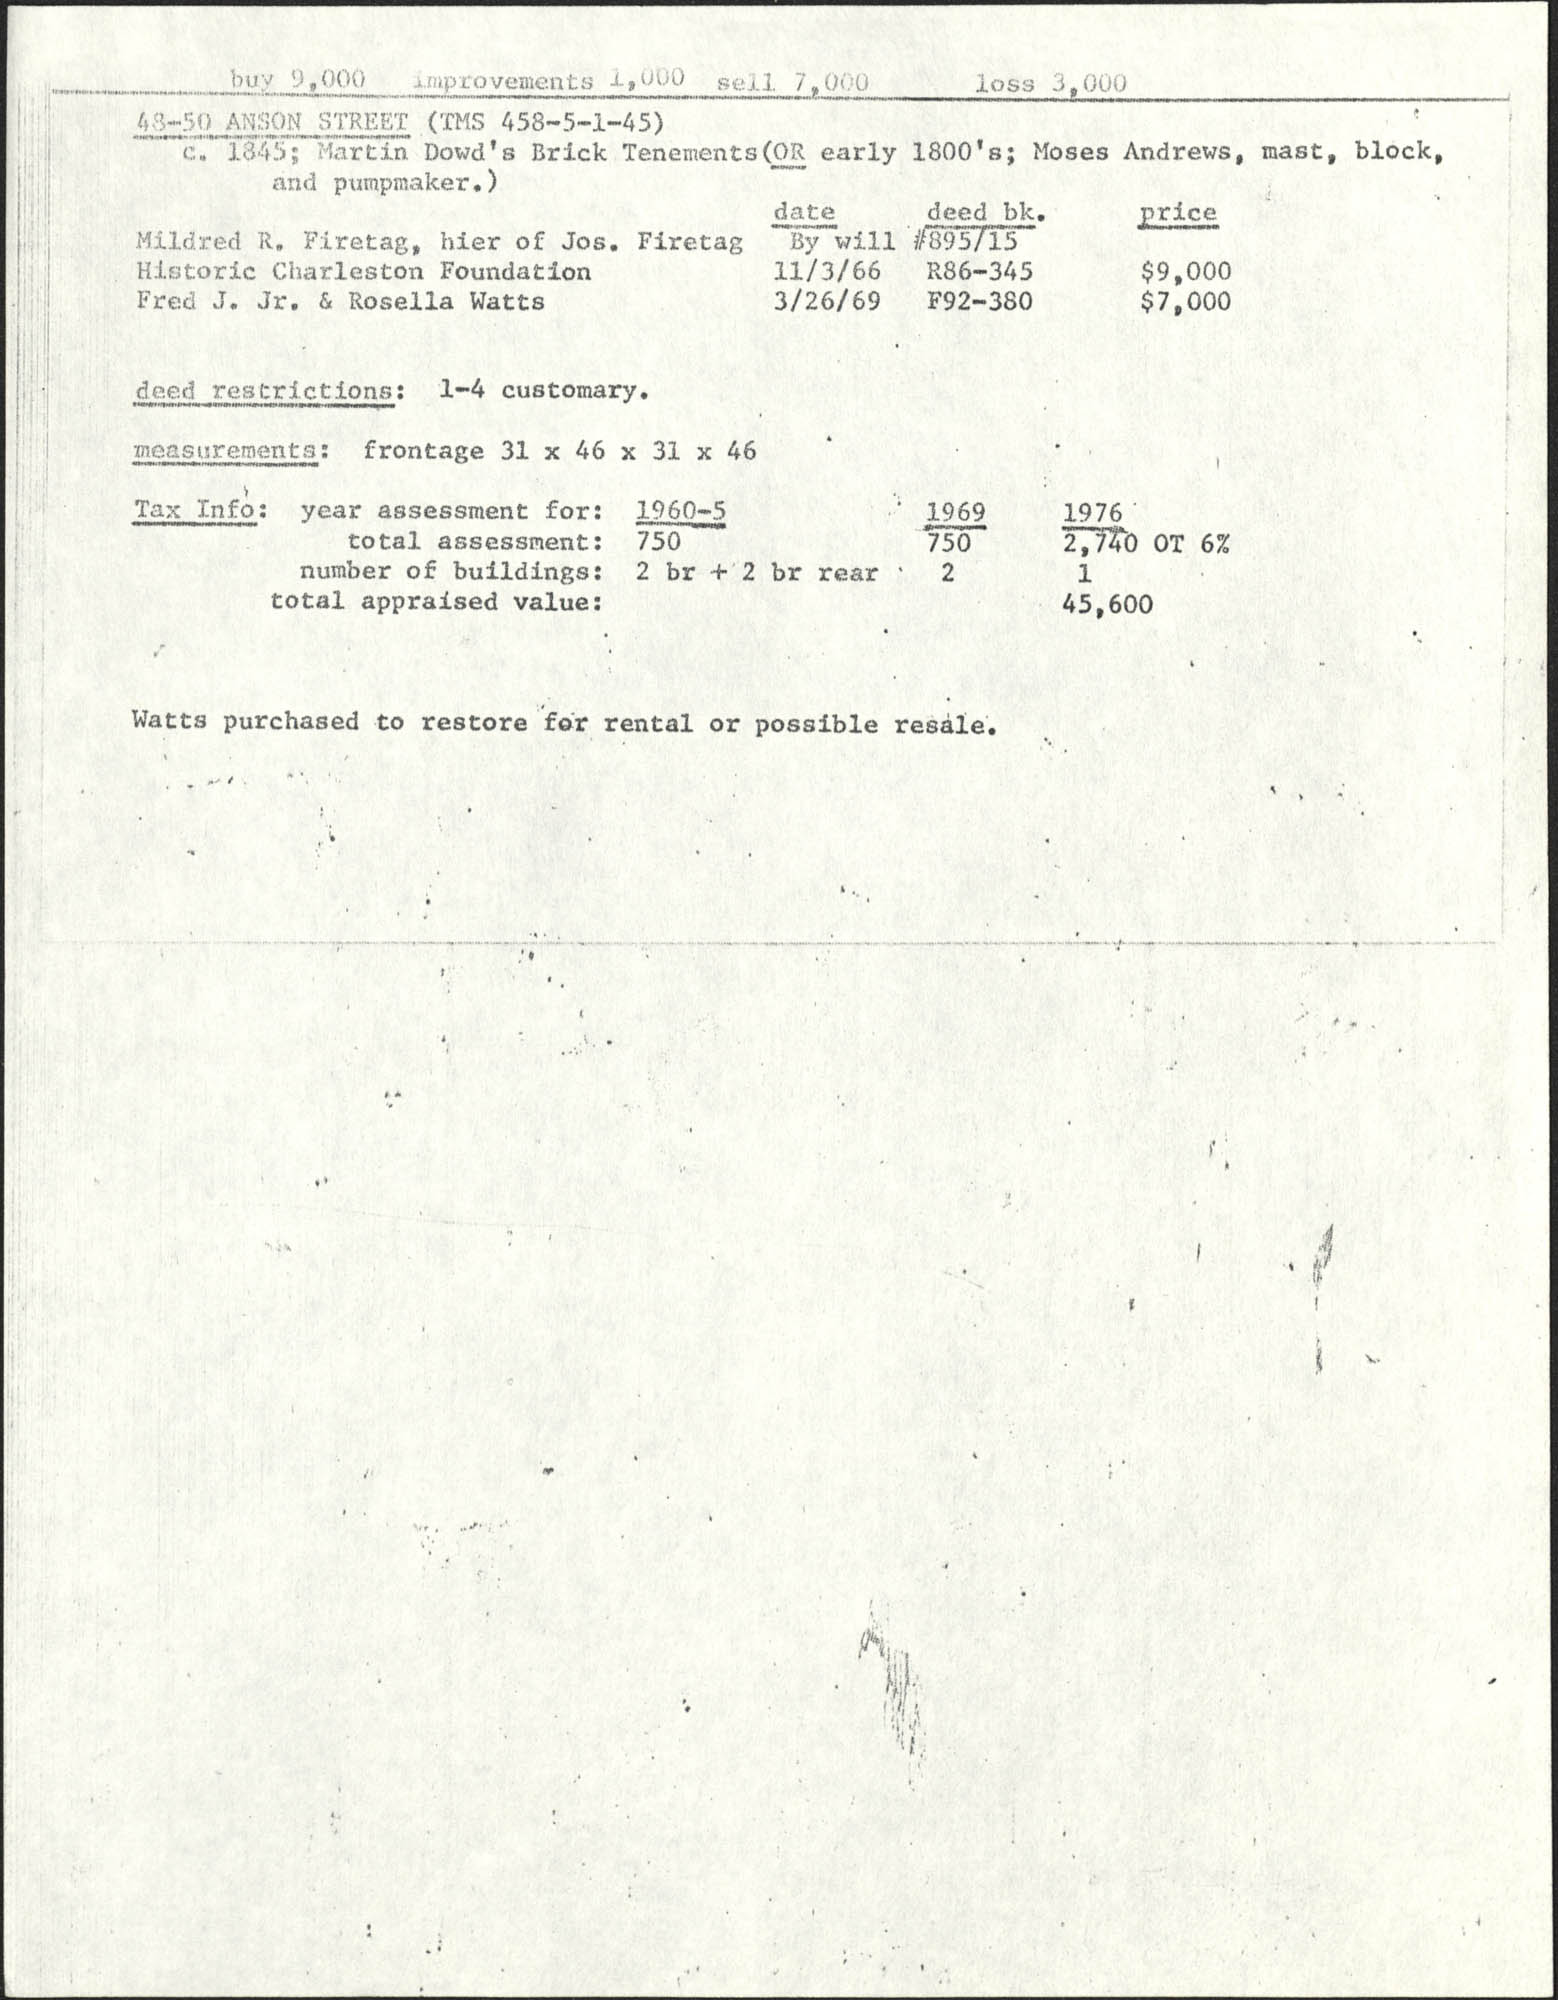 Deed records for 48-50 Anson Street